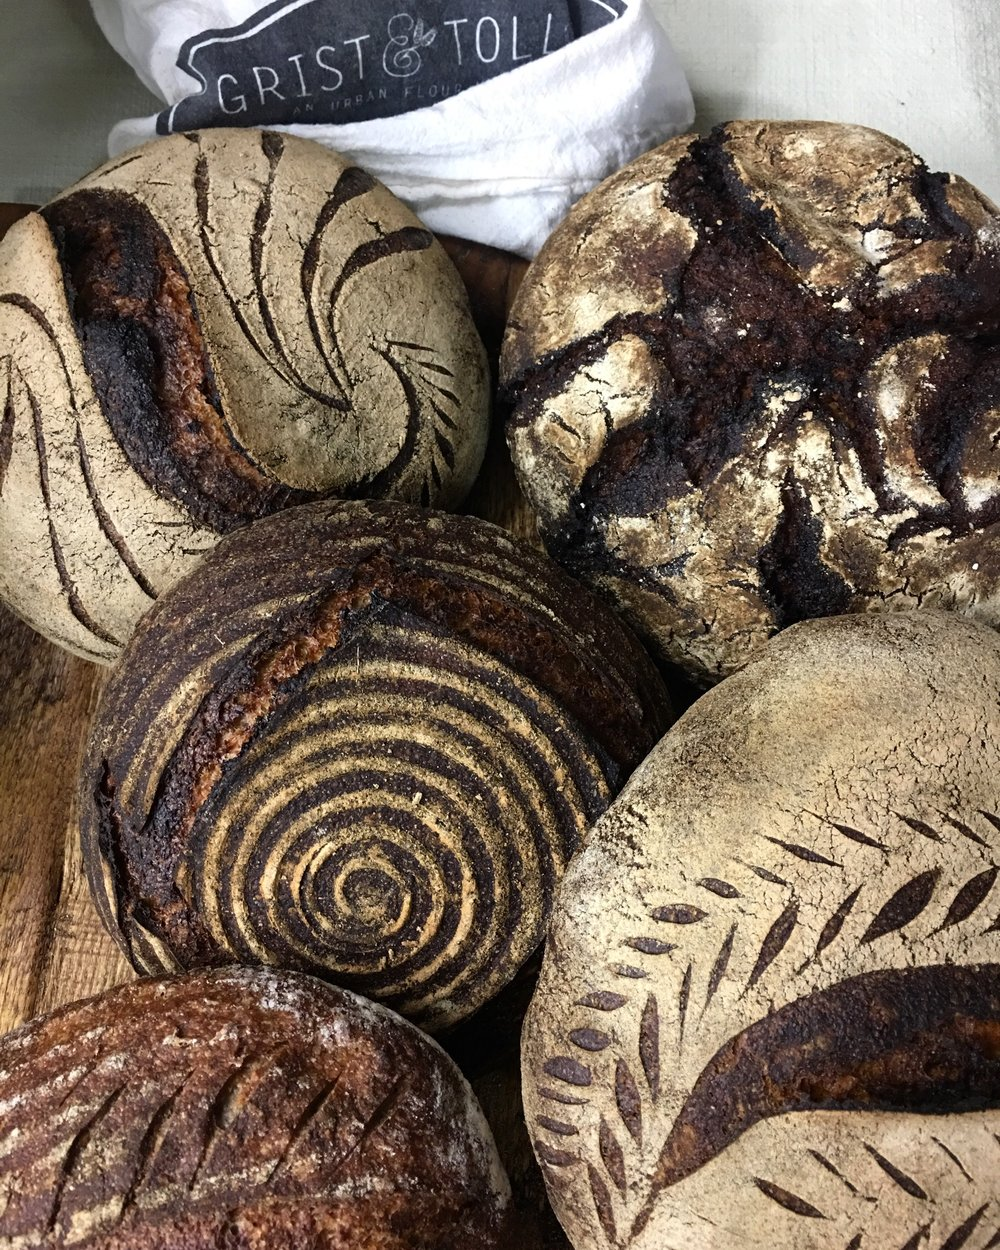 Naturally-leavened loaves made with grain grown by the  Tehachapi Grain Project  and milled by  Grist & Toll.